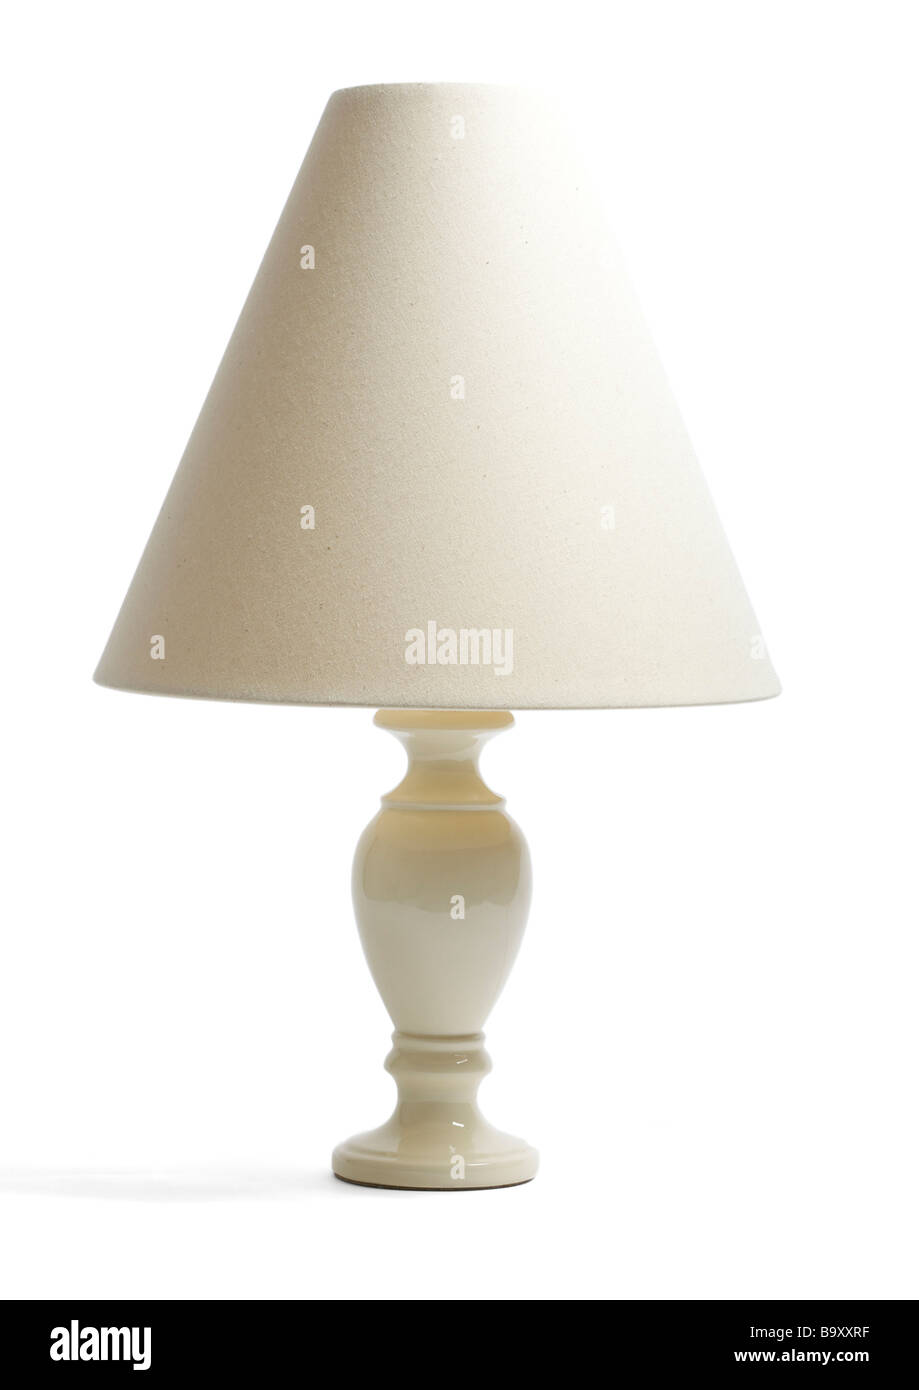 Table lamp on white background - Stock Image